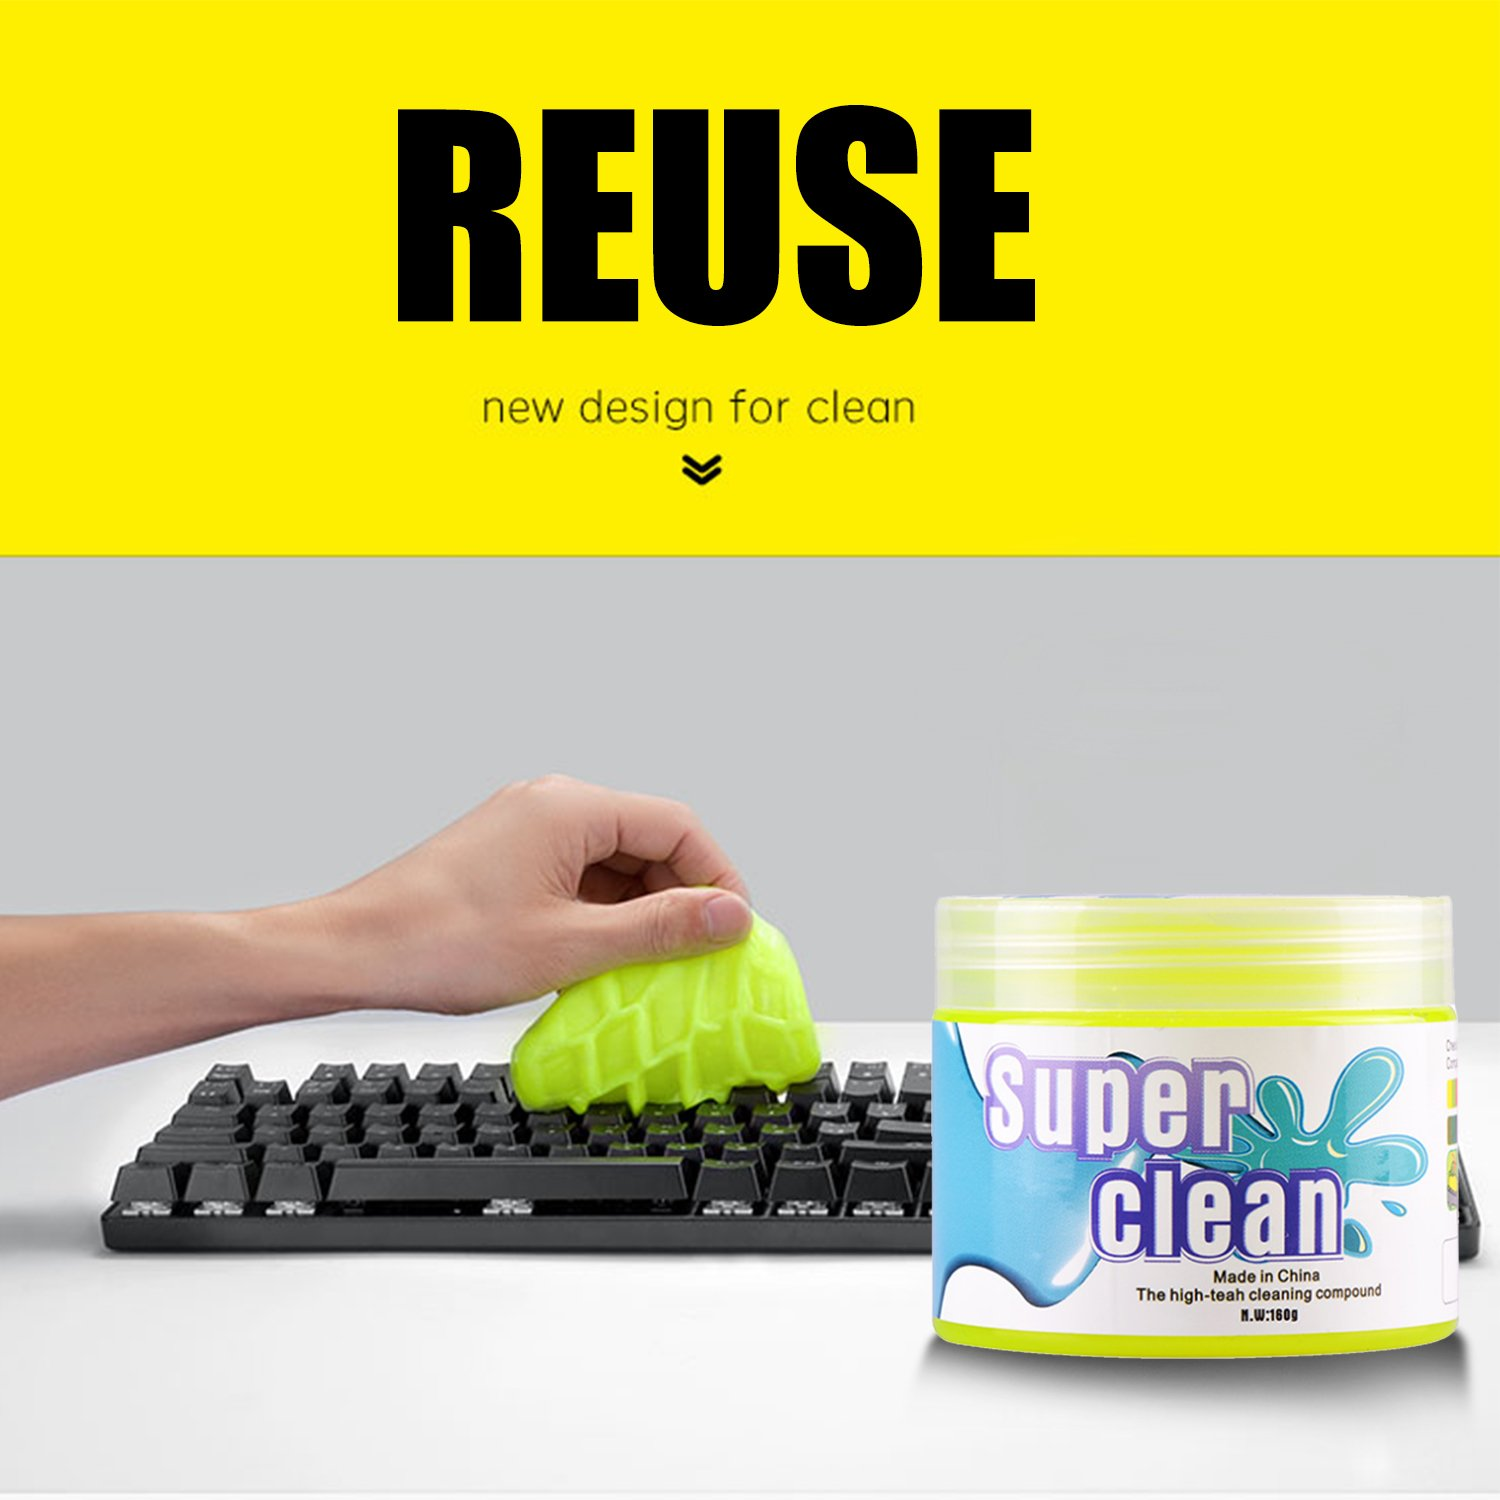 Magic Keyboard Cleaning Mud Laptop Home Furniture Dust Remove Soft Sticky Cleaning Glue Car Interior Reusable Cleaning Gel Disinfect Tool Home Use